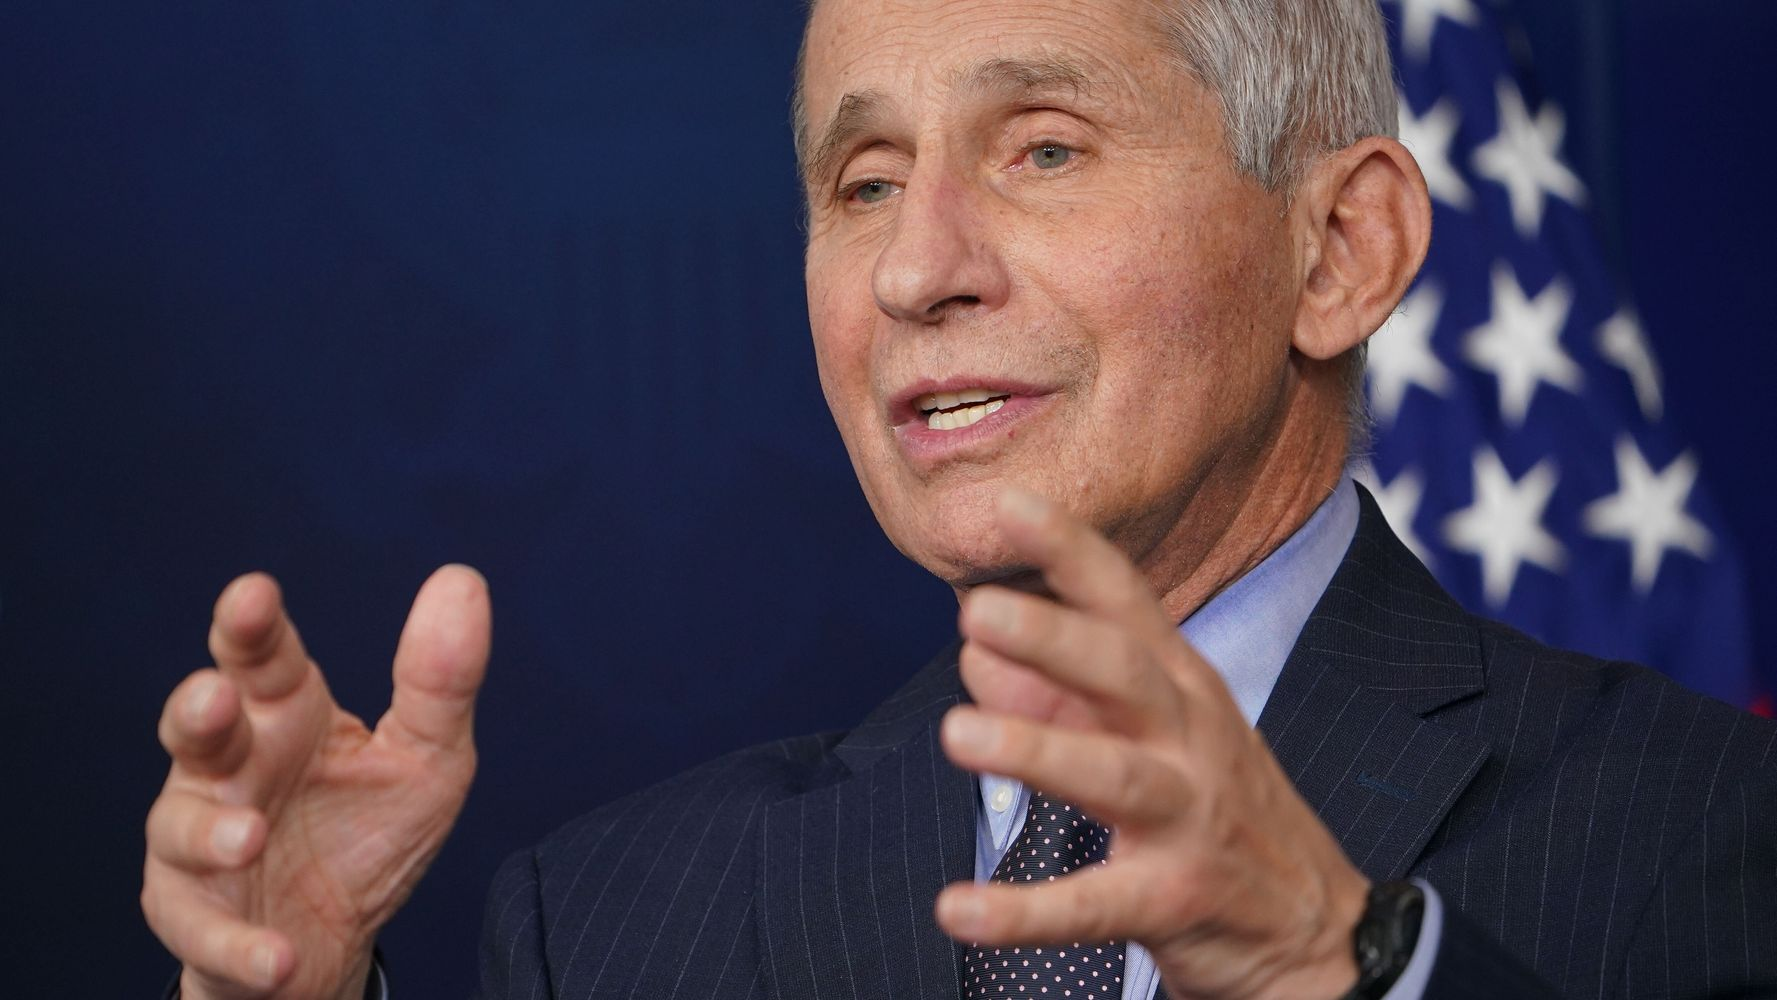 Fauci On Trump Team Using Him In Ad: 'What Is This Bulls**t That You People Are Doing?'